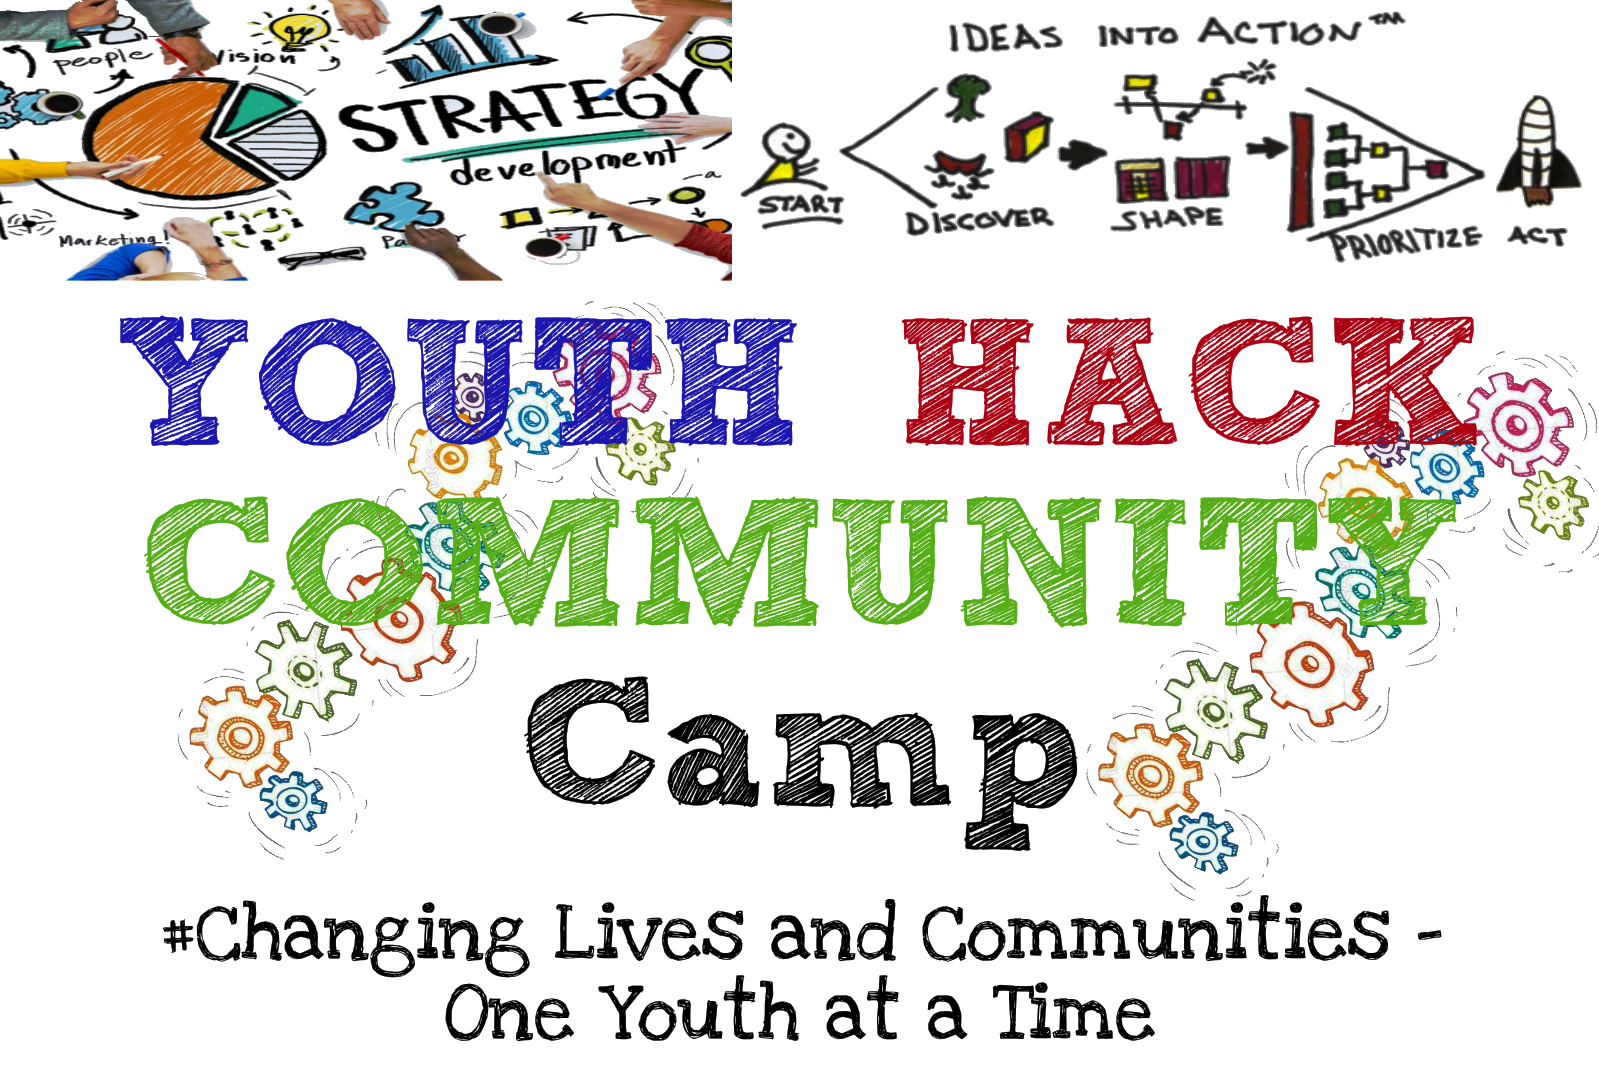 hack-camp-id_26600631.png